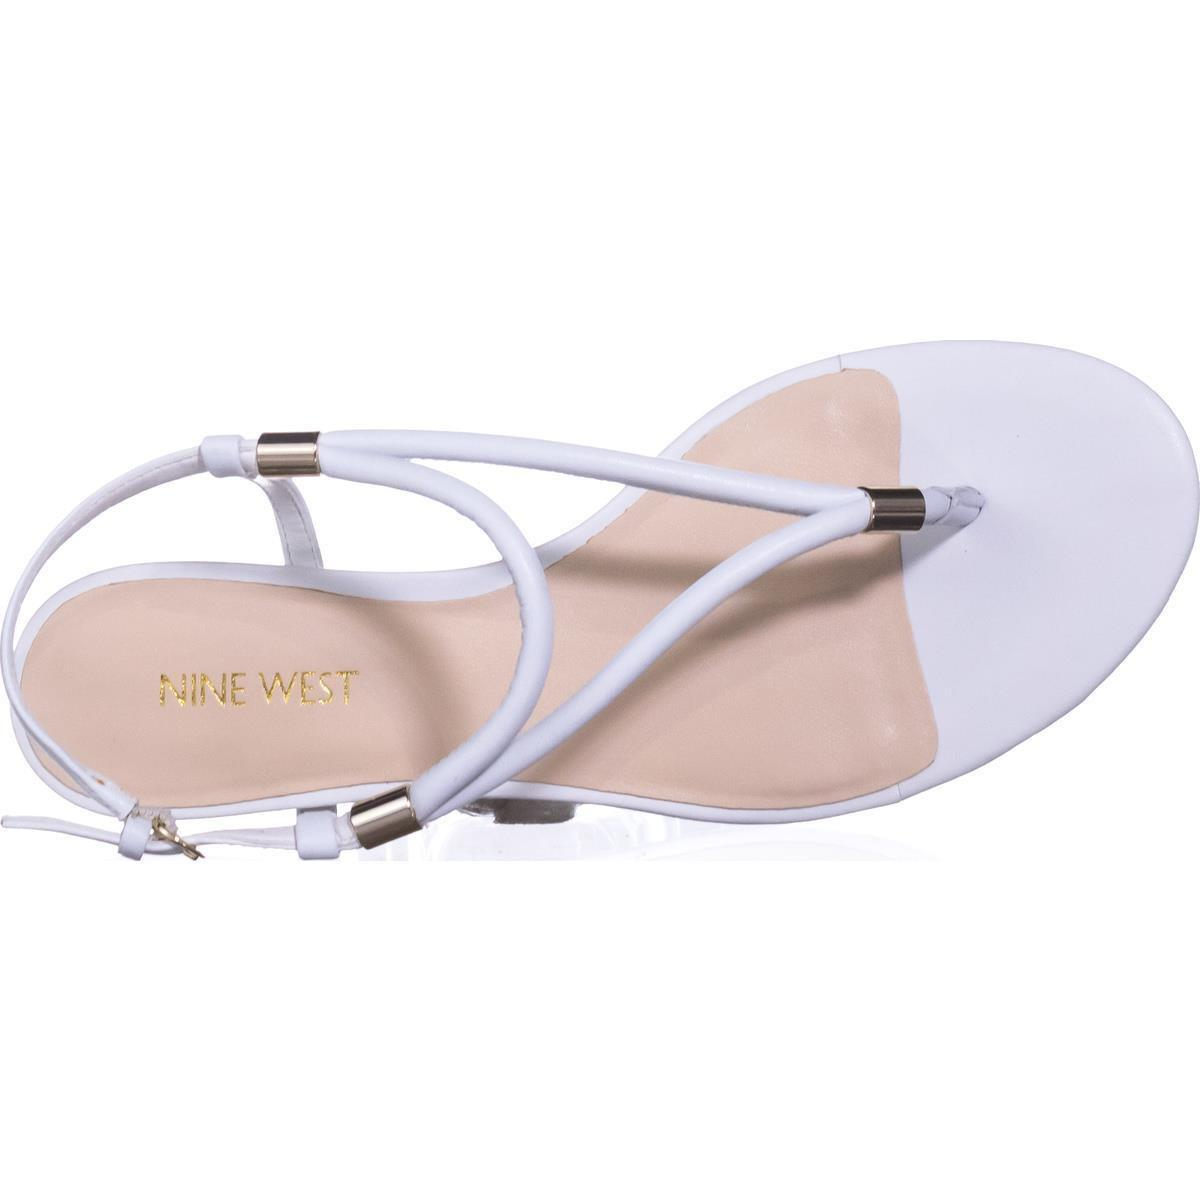 5bf7a8c96d0b49 Nine West - White Rivers T-strap Sandals - Lyst. View fullscreen